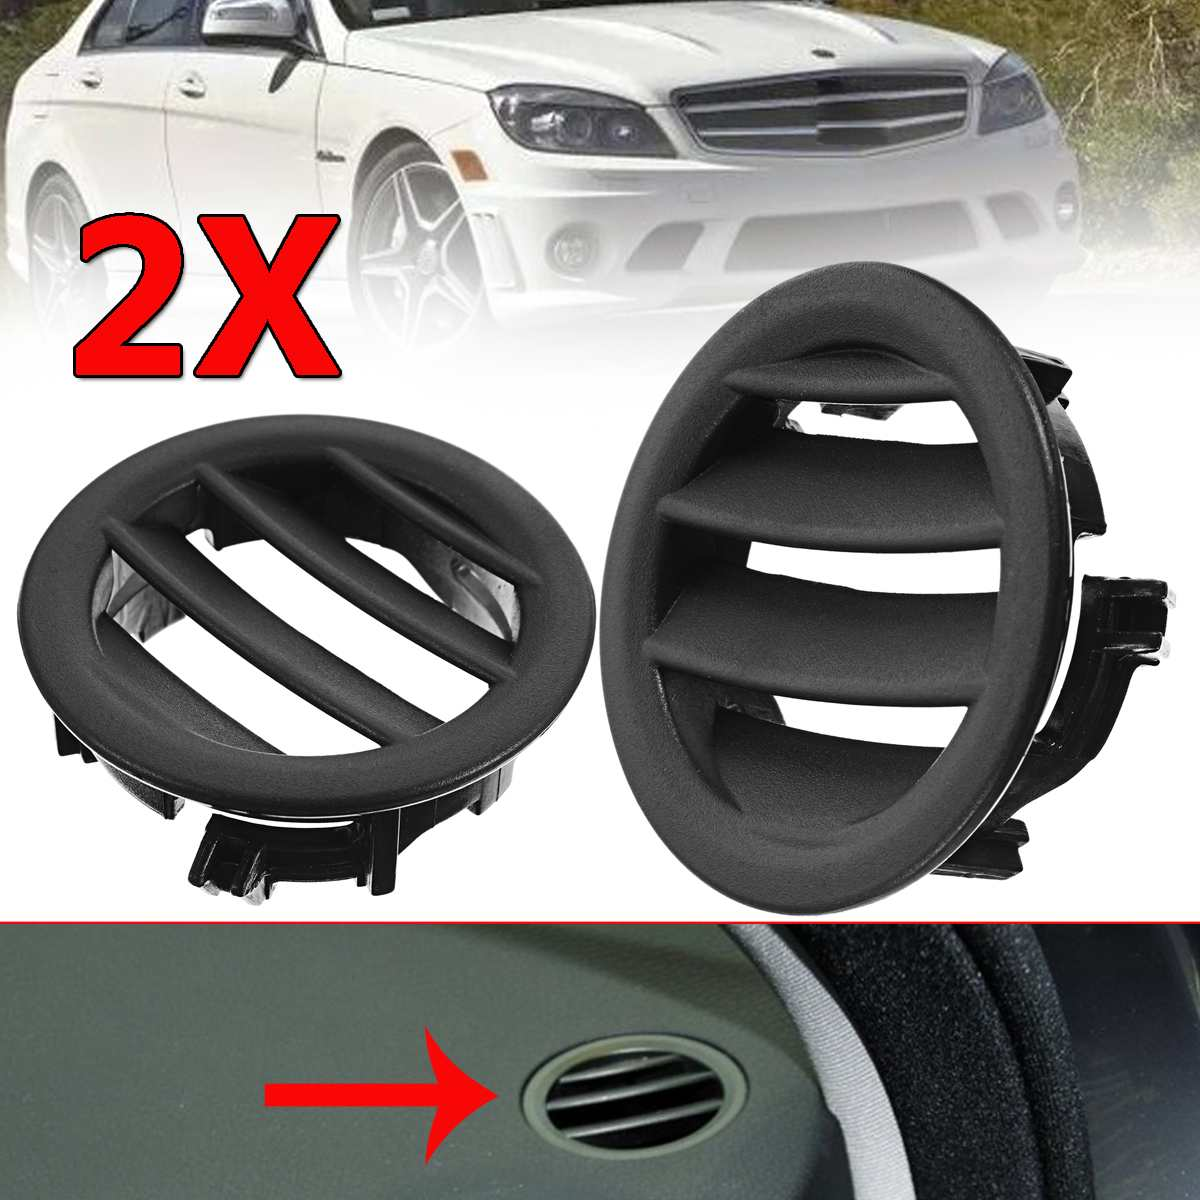 Air Vent W204 Left / Right Car Air Ac Vent Grille Cover Tabs For Mercedes W204 C300 C350 C630 C class 2008 2009 2010 2011